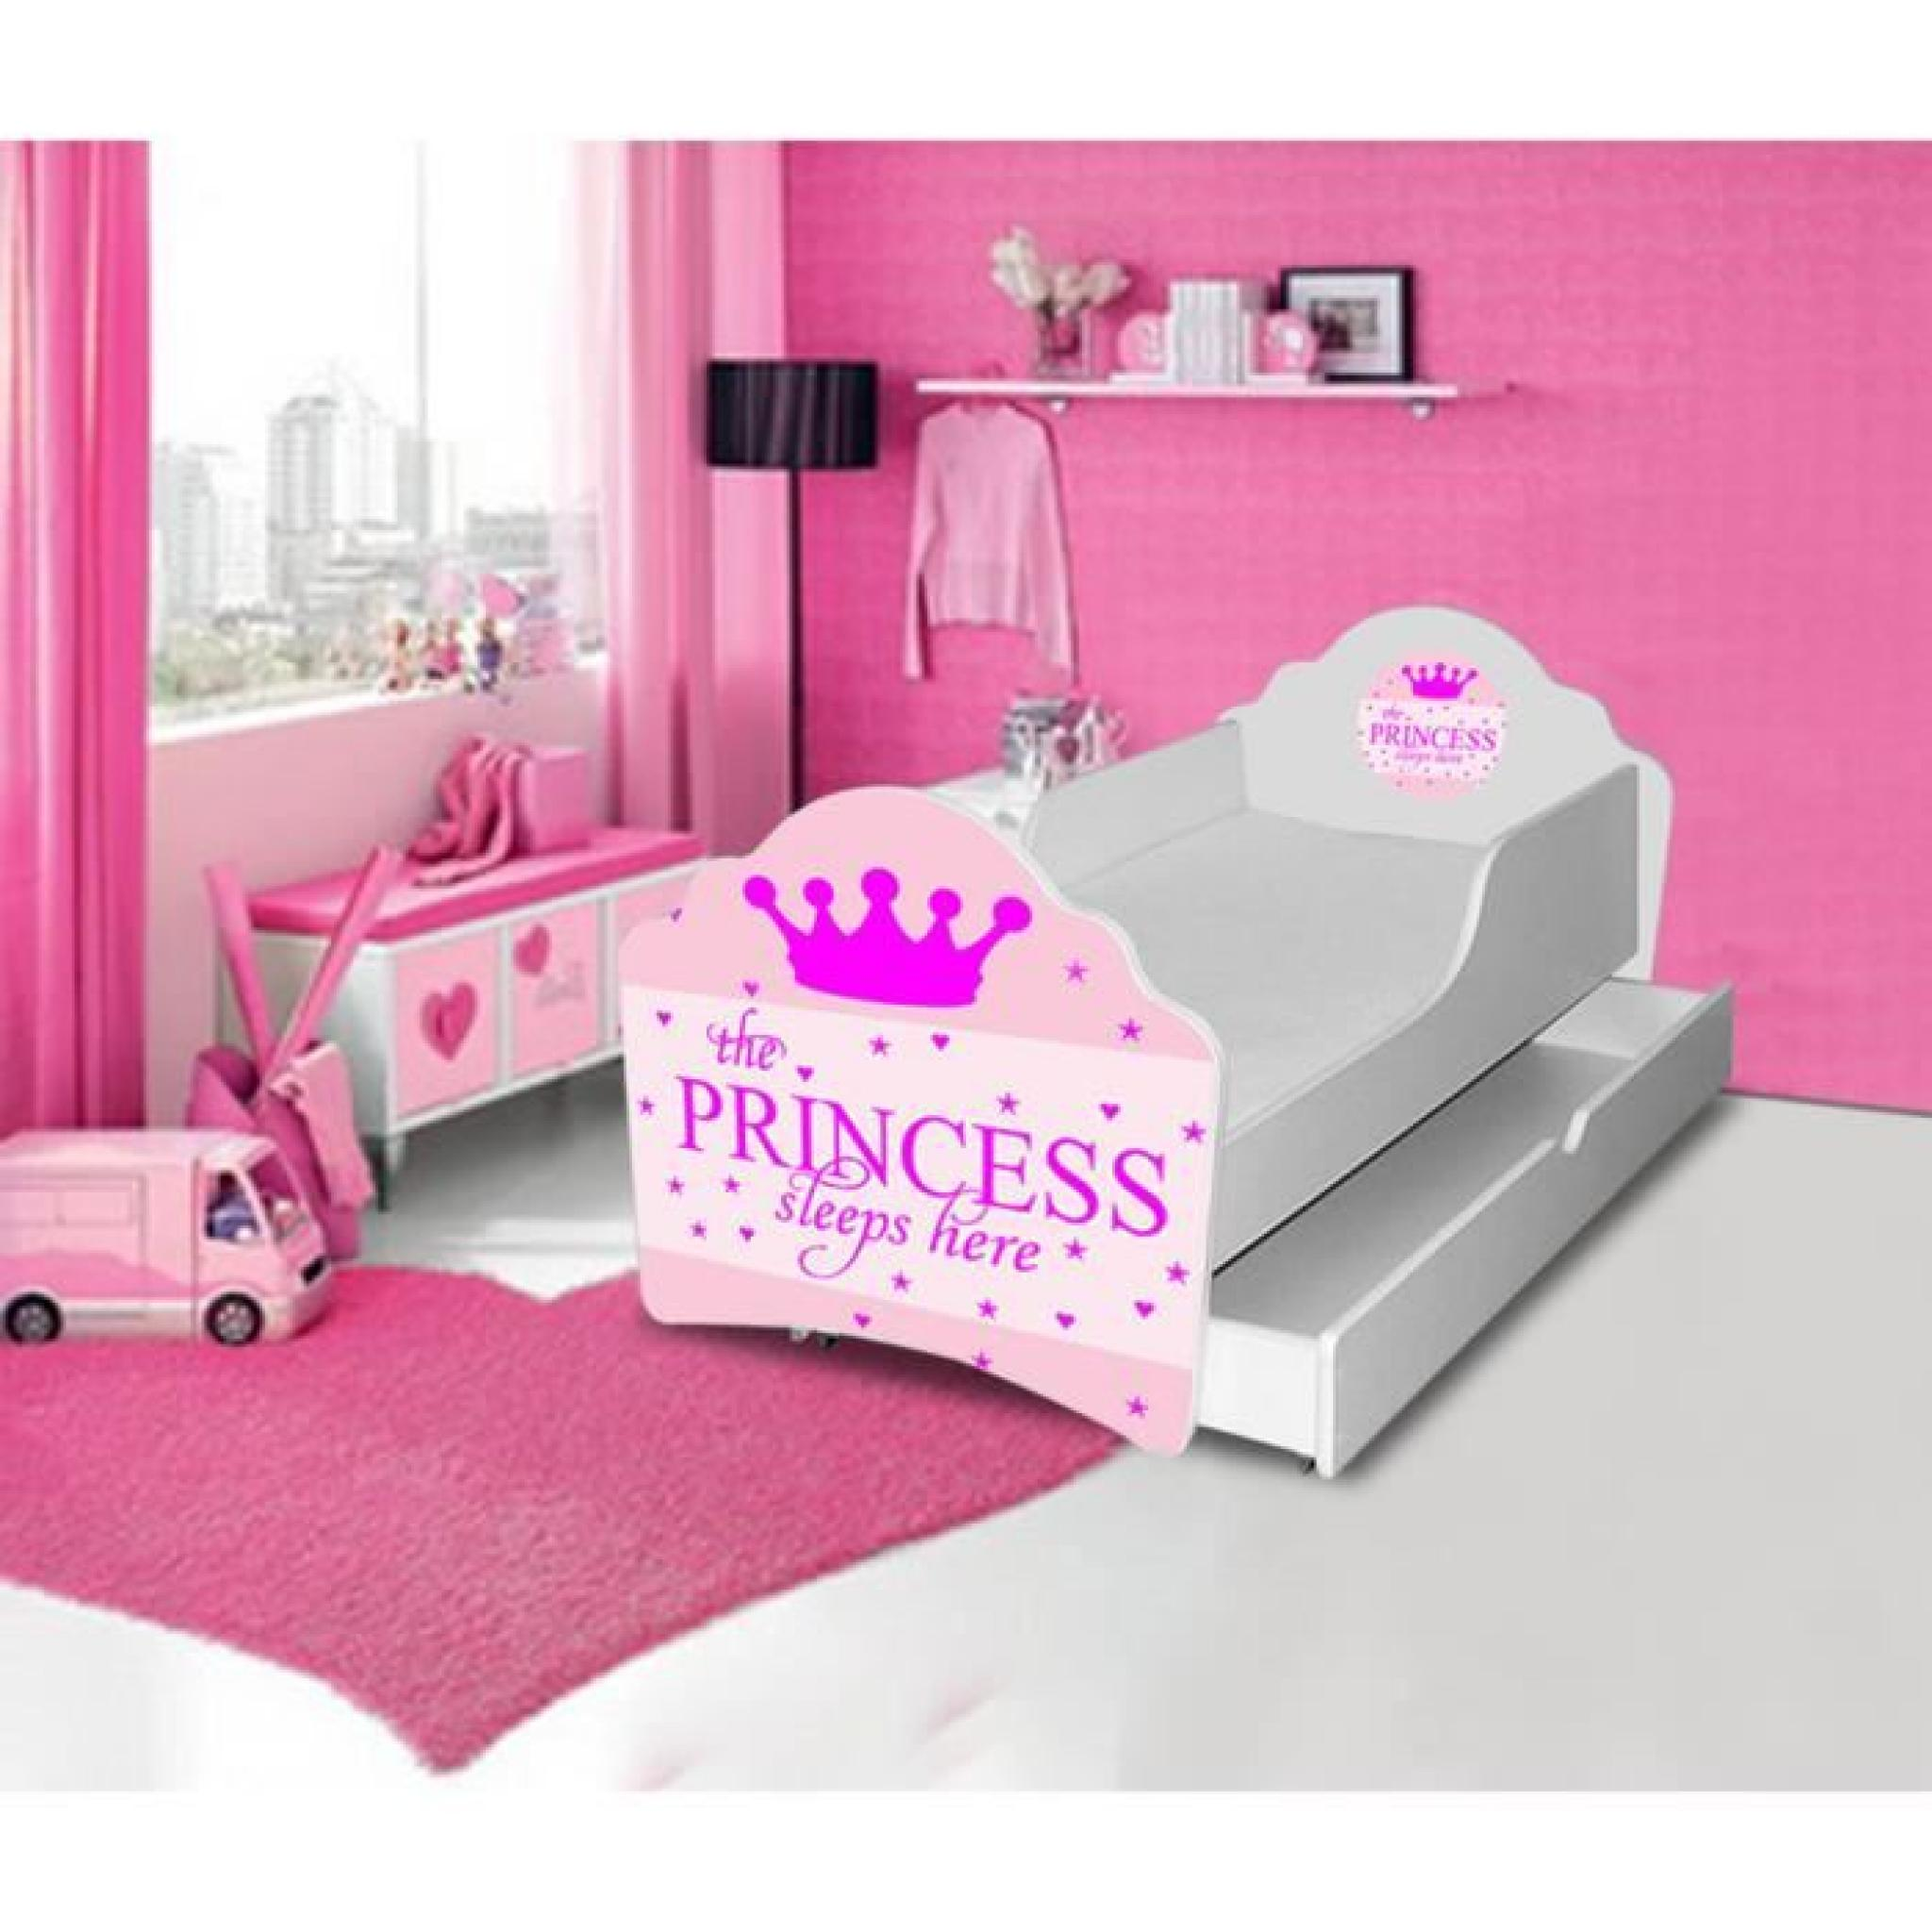 lit gigogne enfant sleeping princesse sommier matelas 160x80cm achat vente lit enfant pas cher. Black Bedroom Furniture Sets. Home Design Ideas